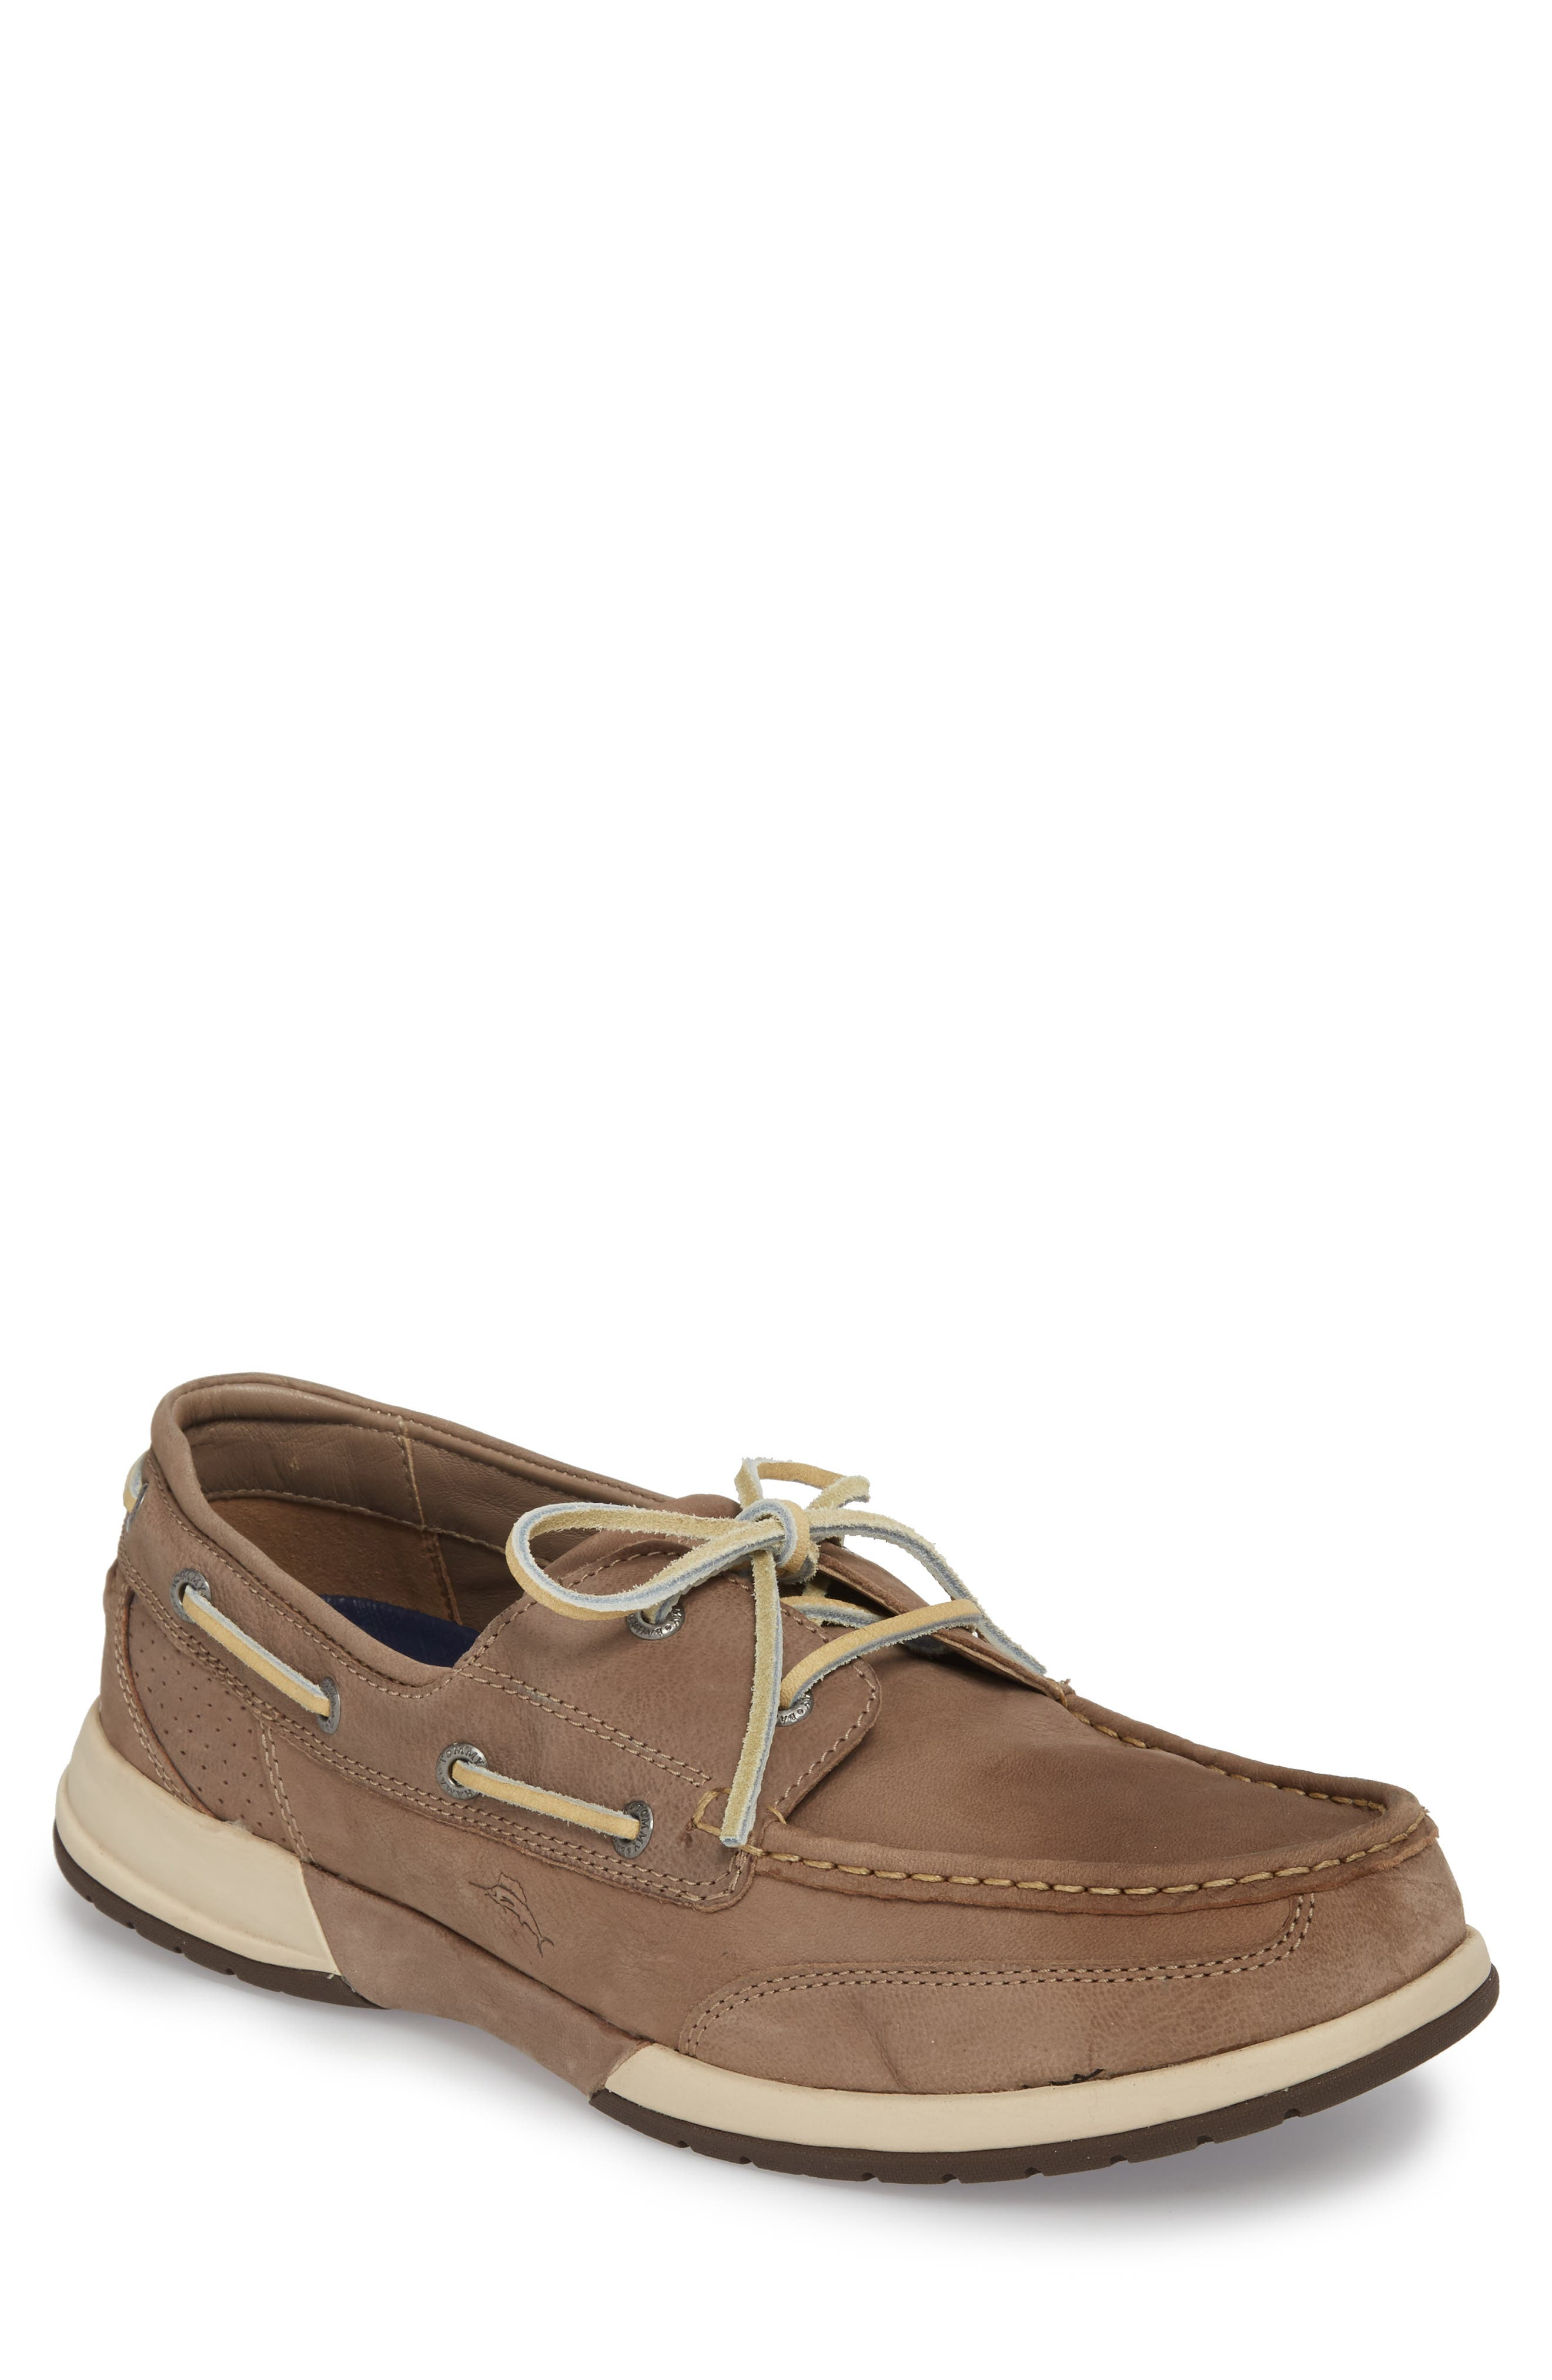 Ashore Thing Boat Shoe,                         Main,                         color, Taupe Nubuck